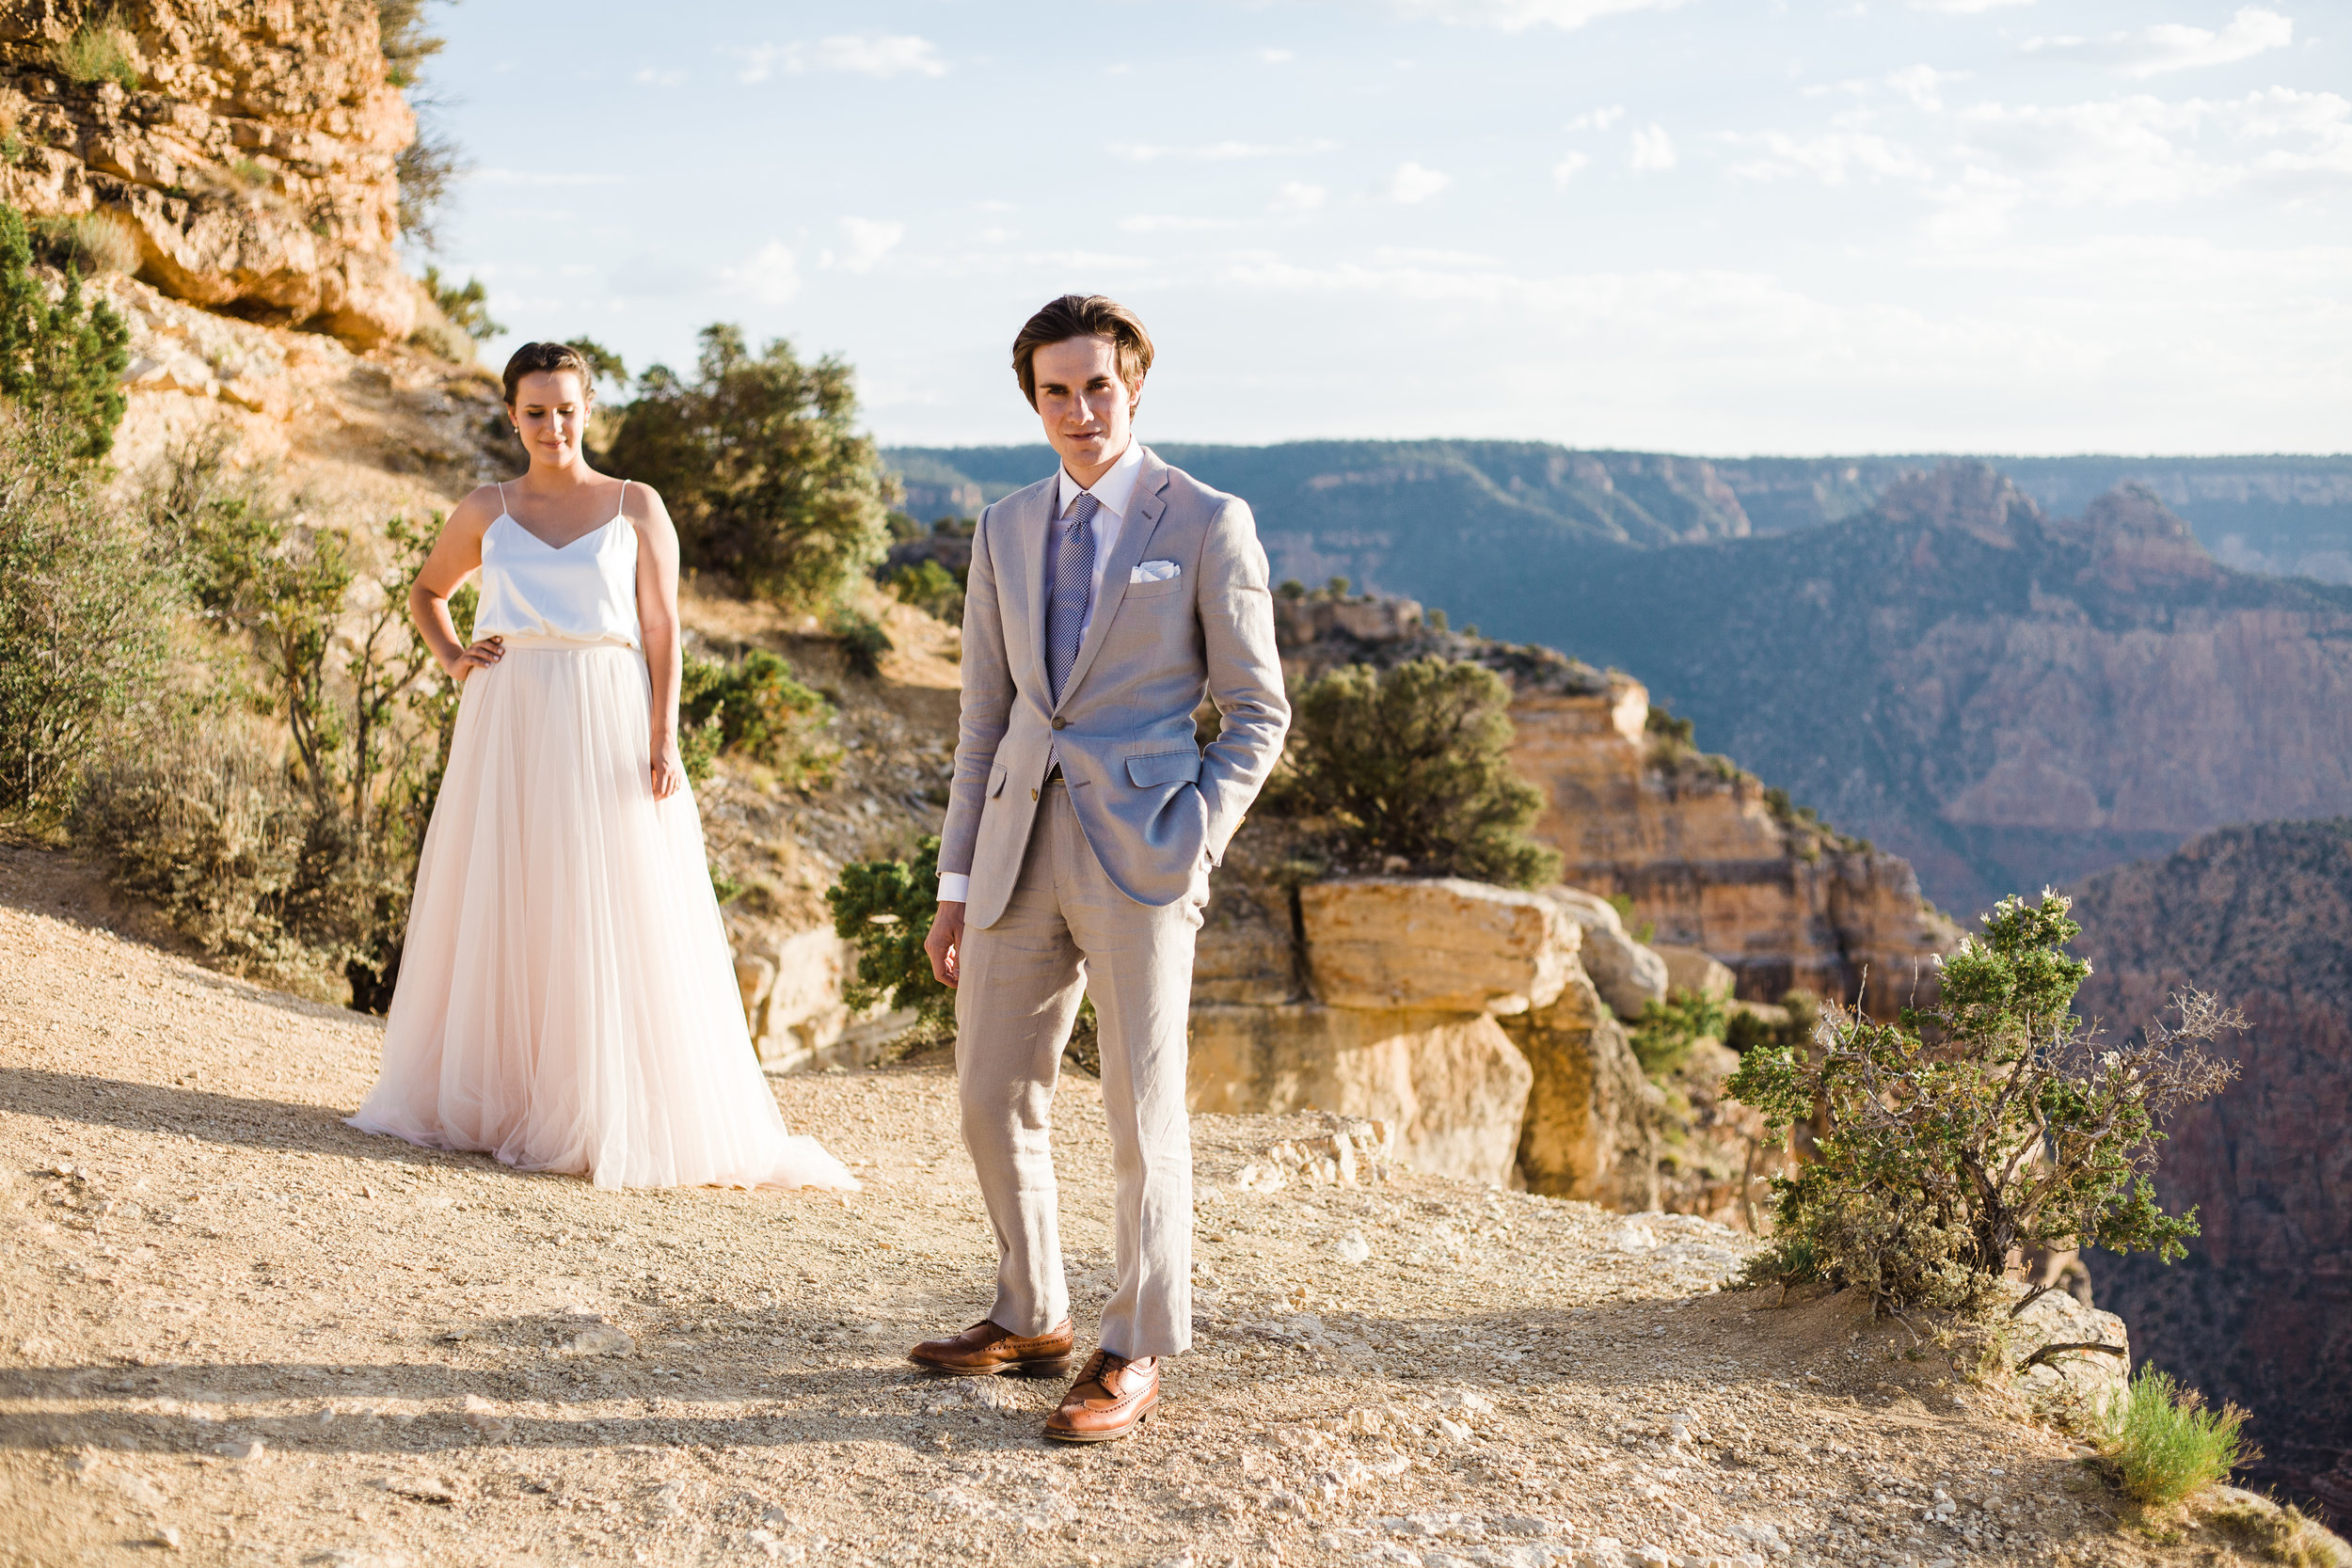 Grand Canyon bride and groom portrait